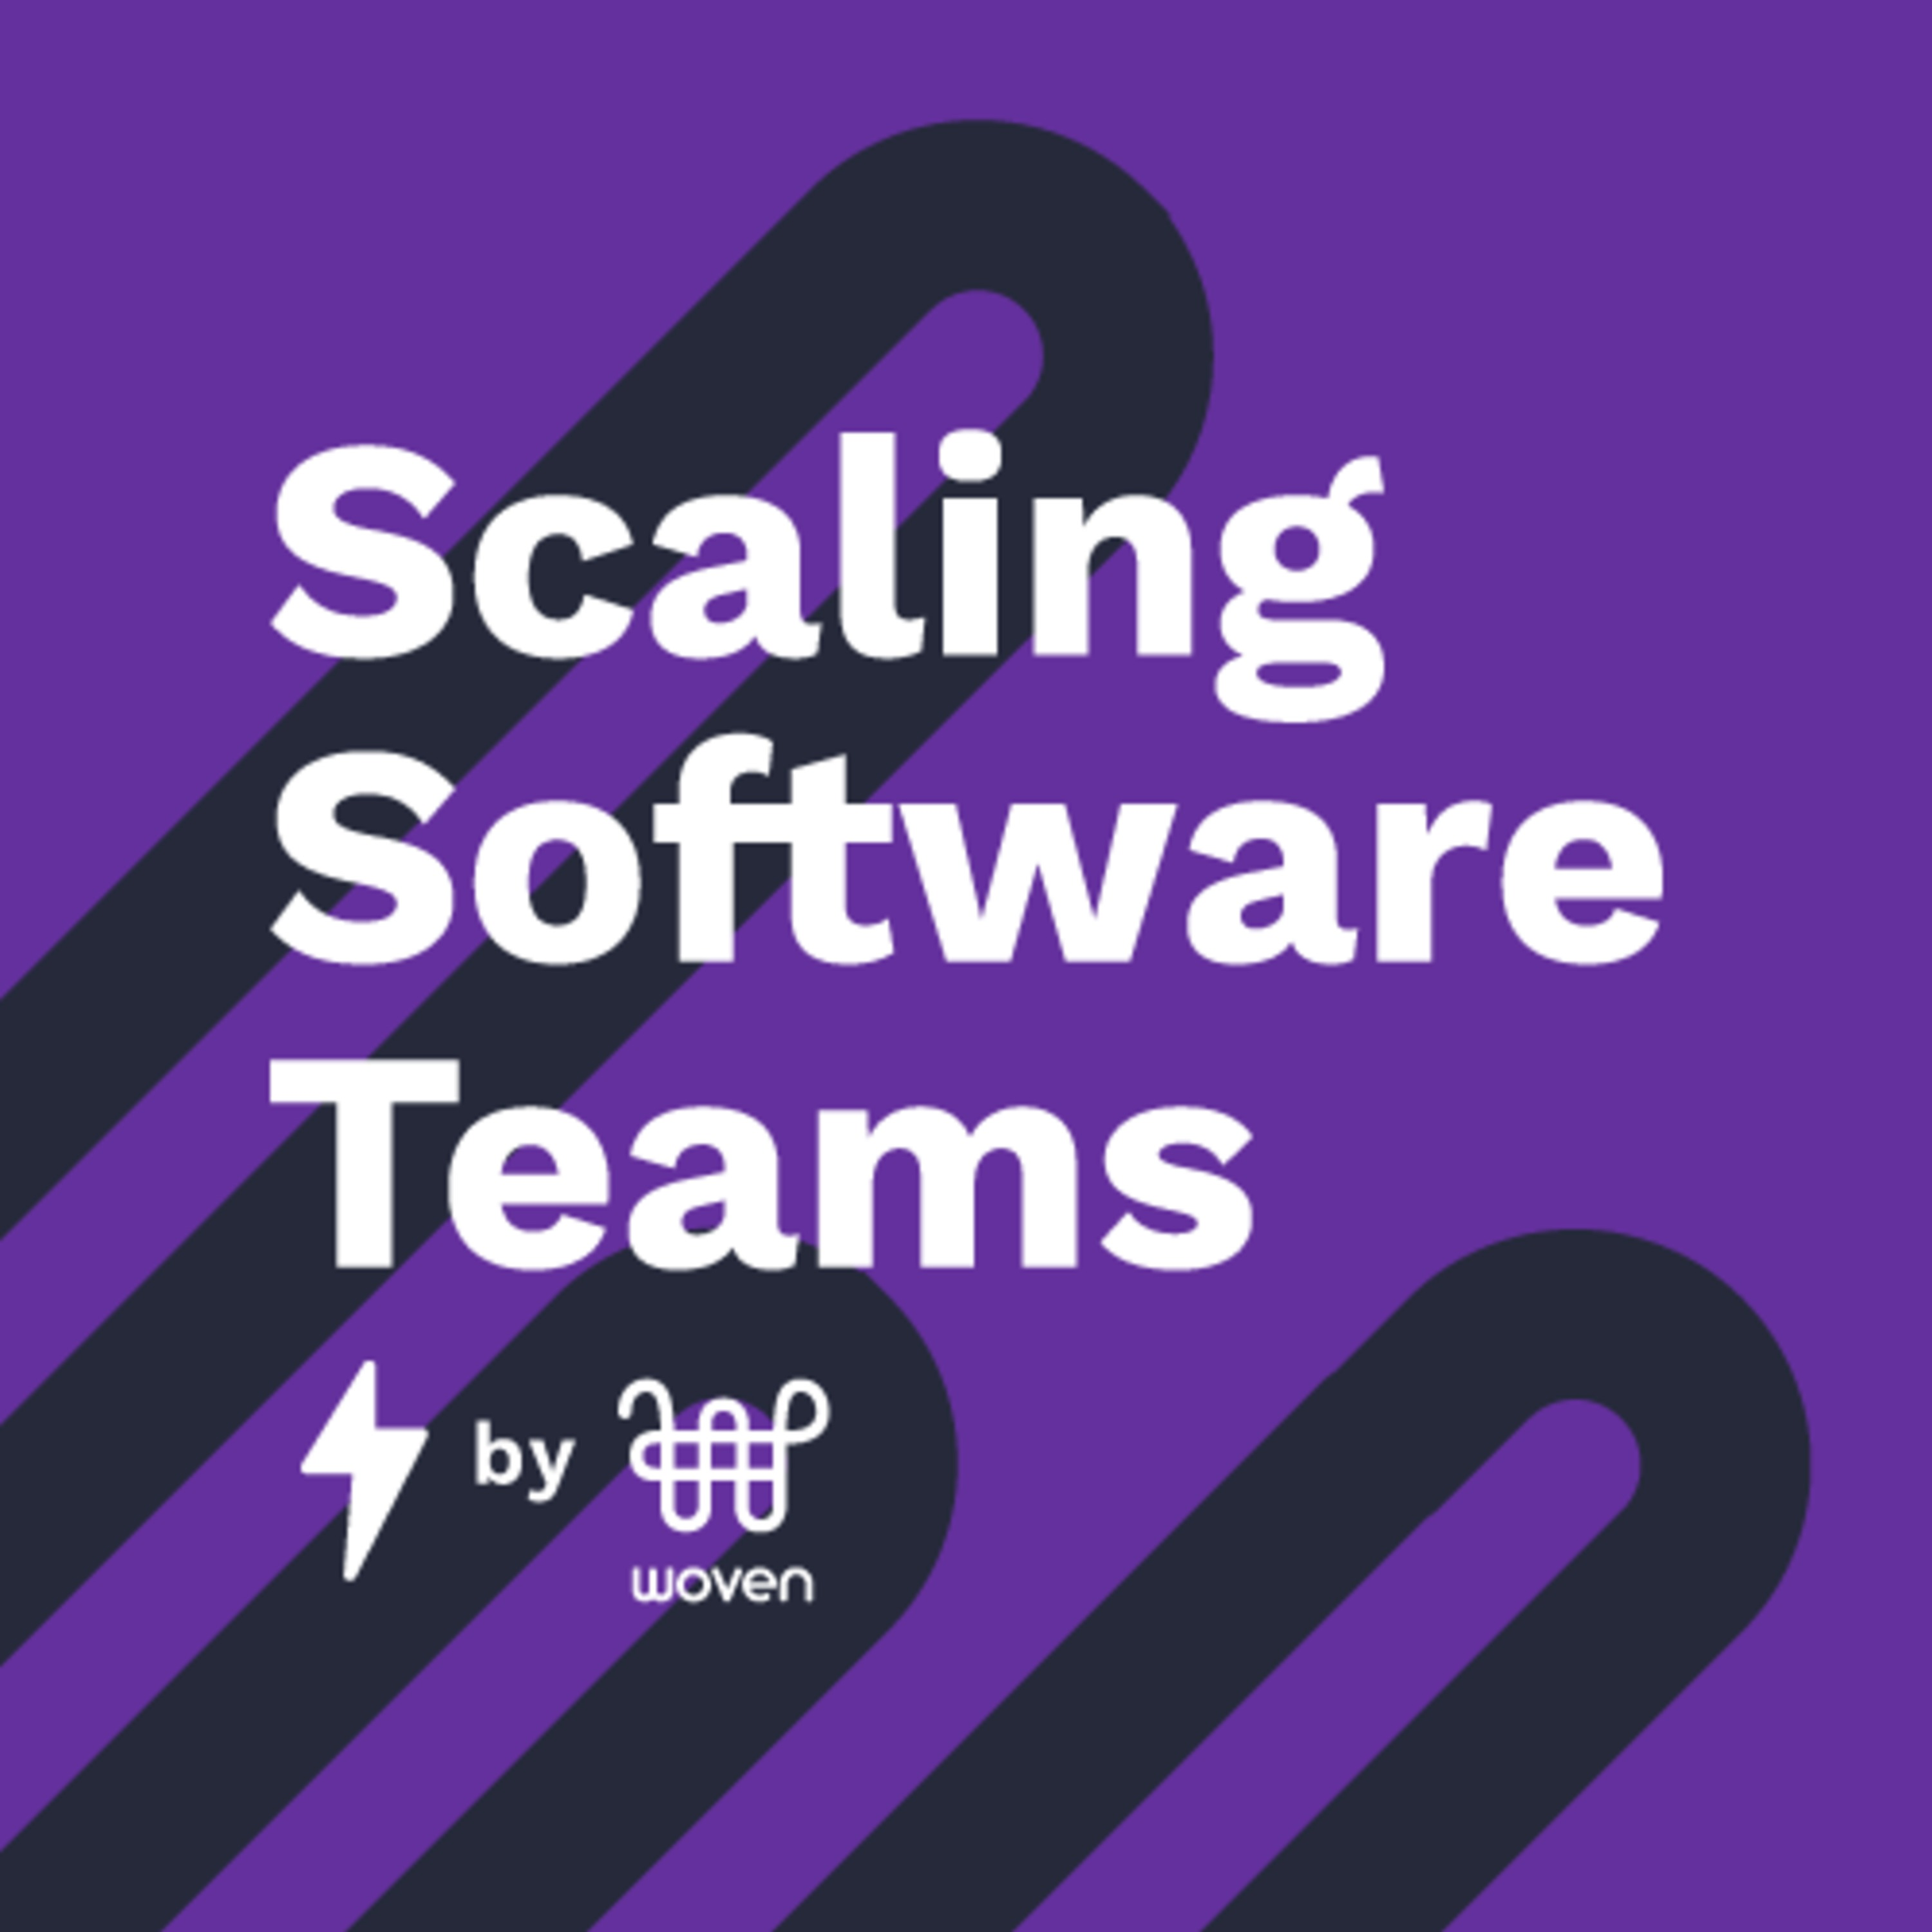 Wes Winham | Scaling Software: What's this all about?